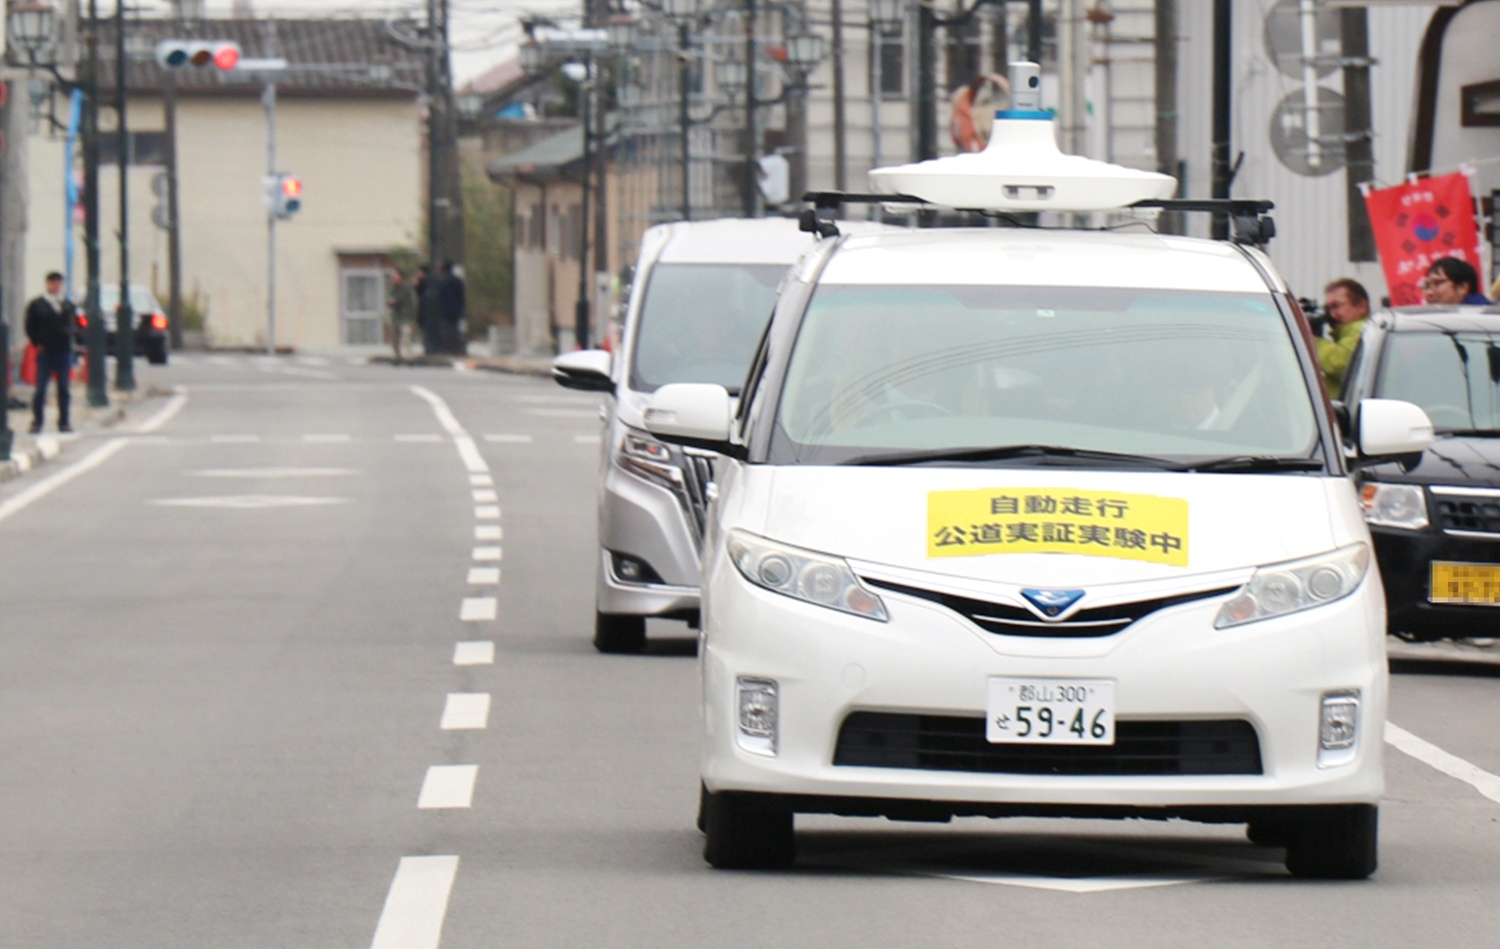 Self-driving cars are being tested on the public roads in the town of Namie, aiming to boost the return of residents.